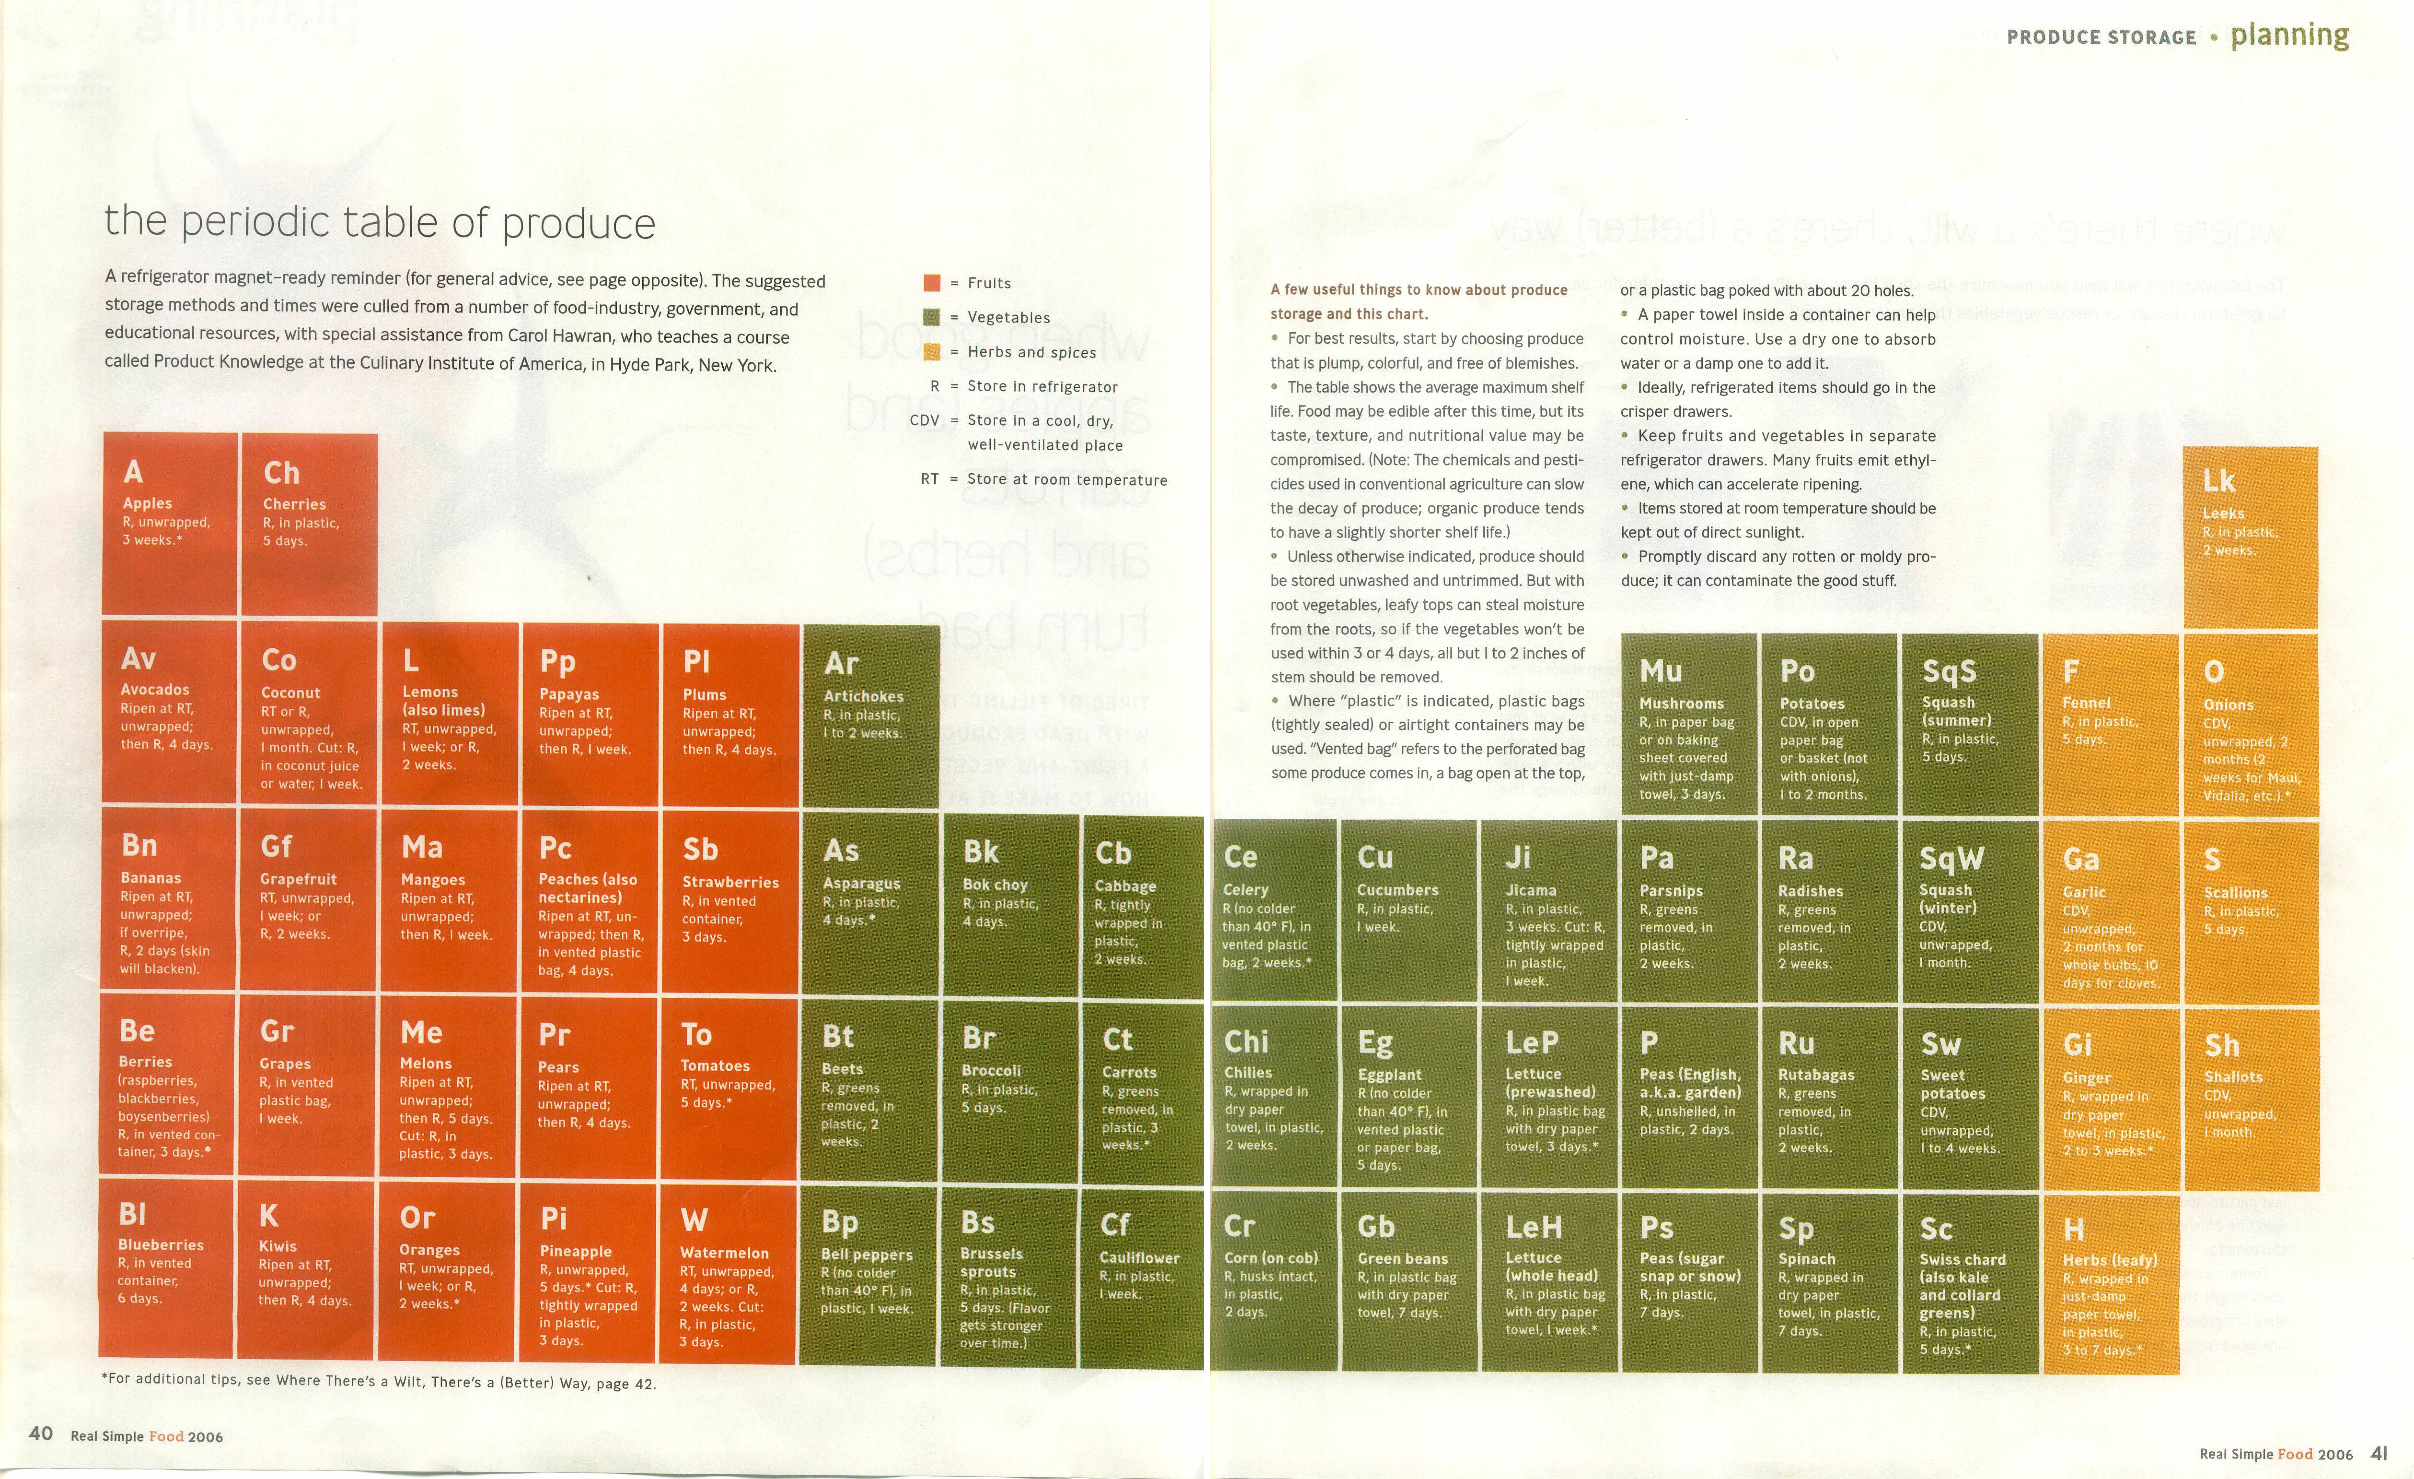 The Periodic Table Of Produce A Guide To Storing Fresh Produce Food